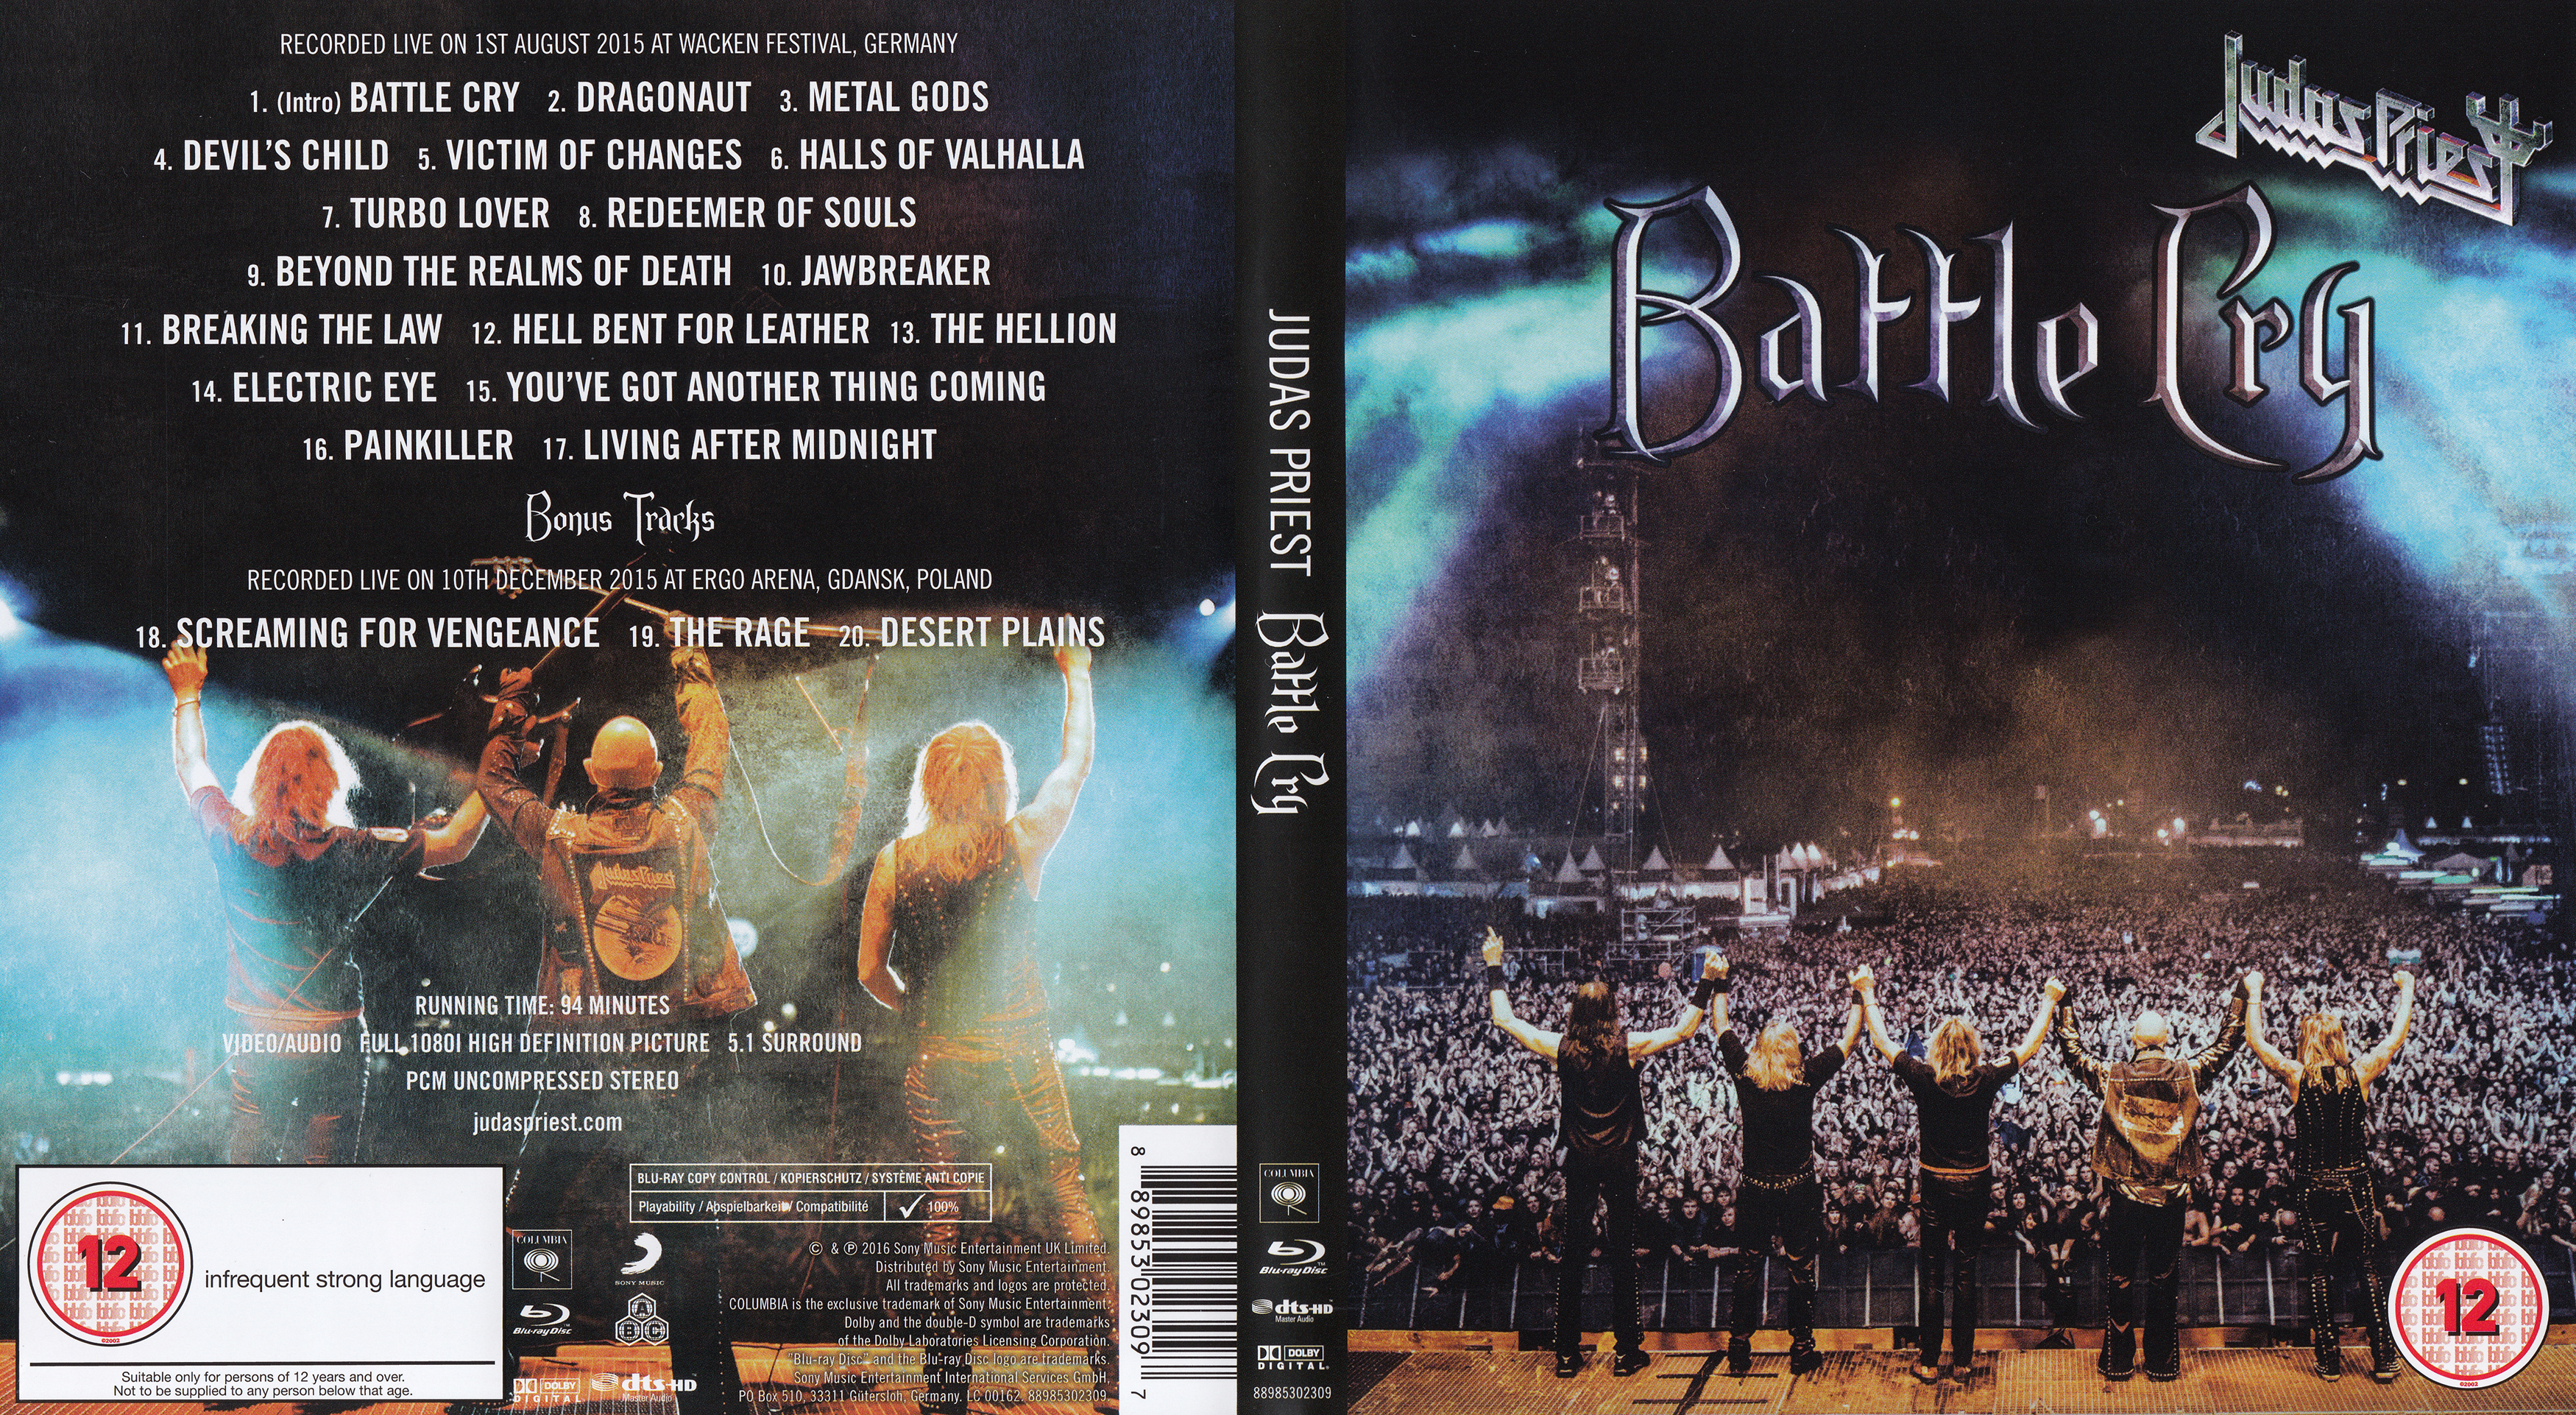 Judas Priest - Battle Cry Blu ray 30 gb exclusivo